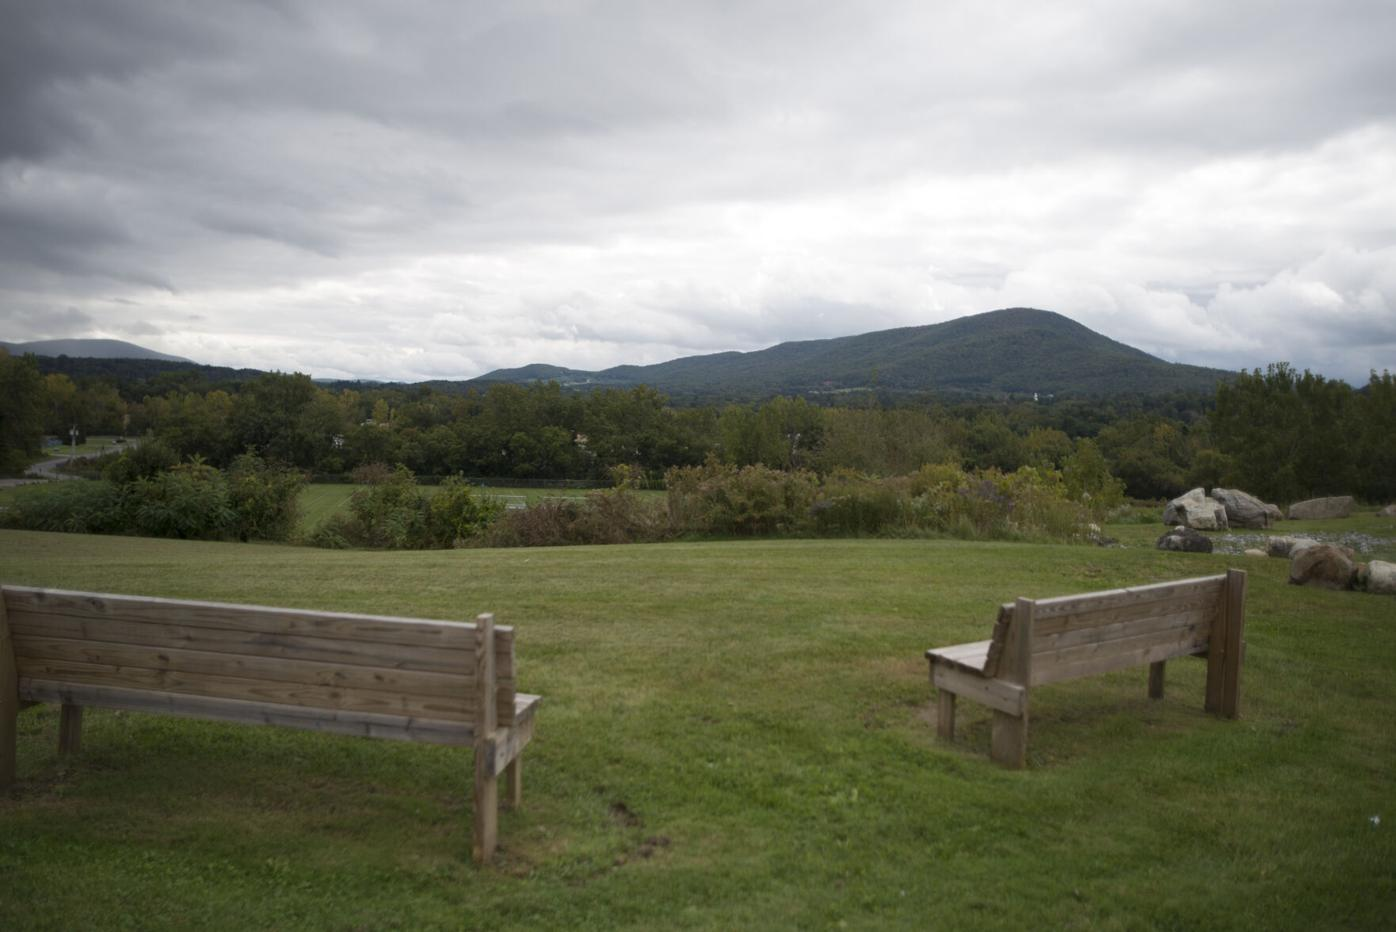 A view from Willow Park on September 30.jpg